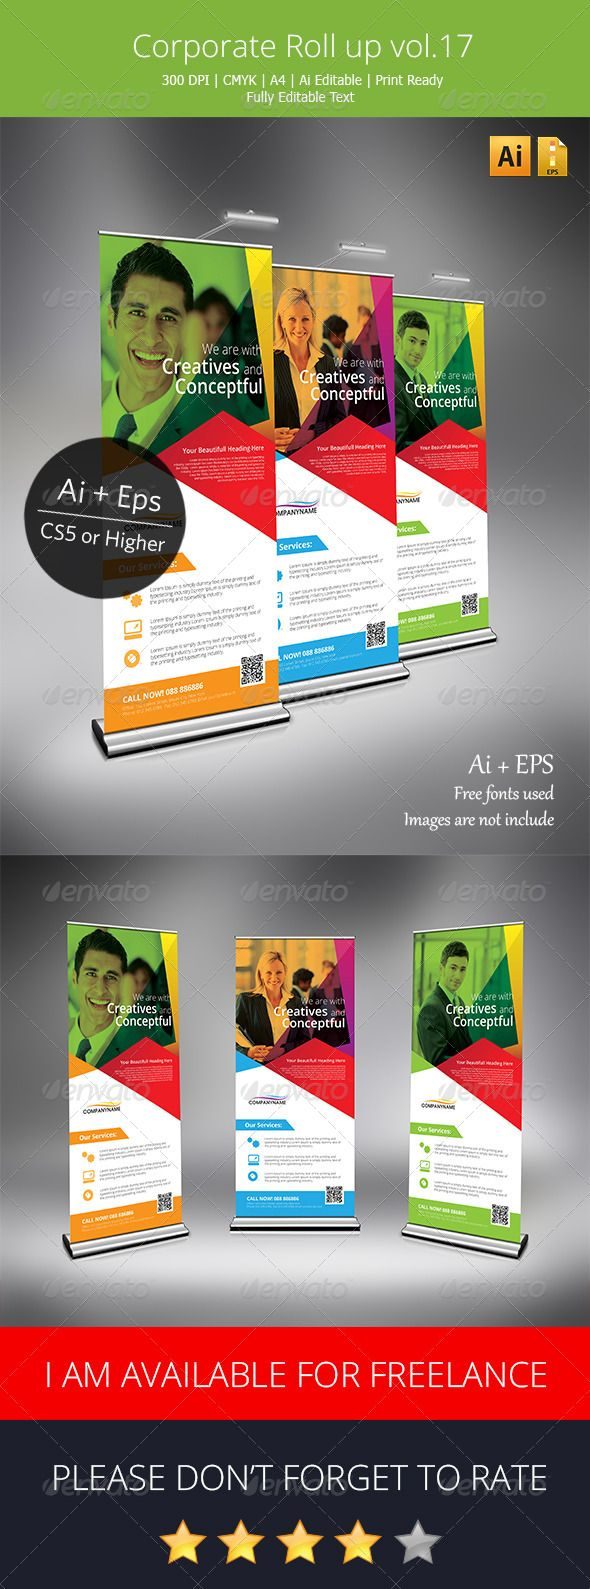 Corporate+Roll+Up+Banner+Vol.17